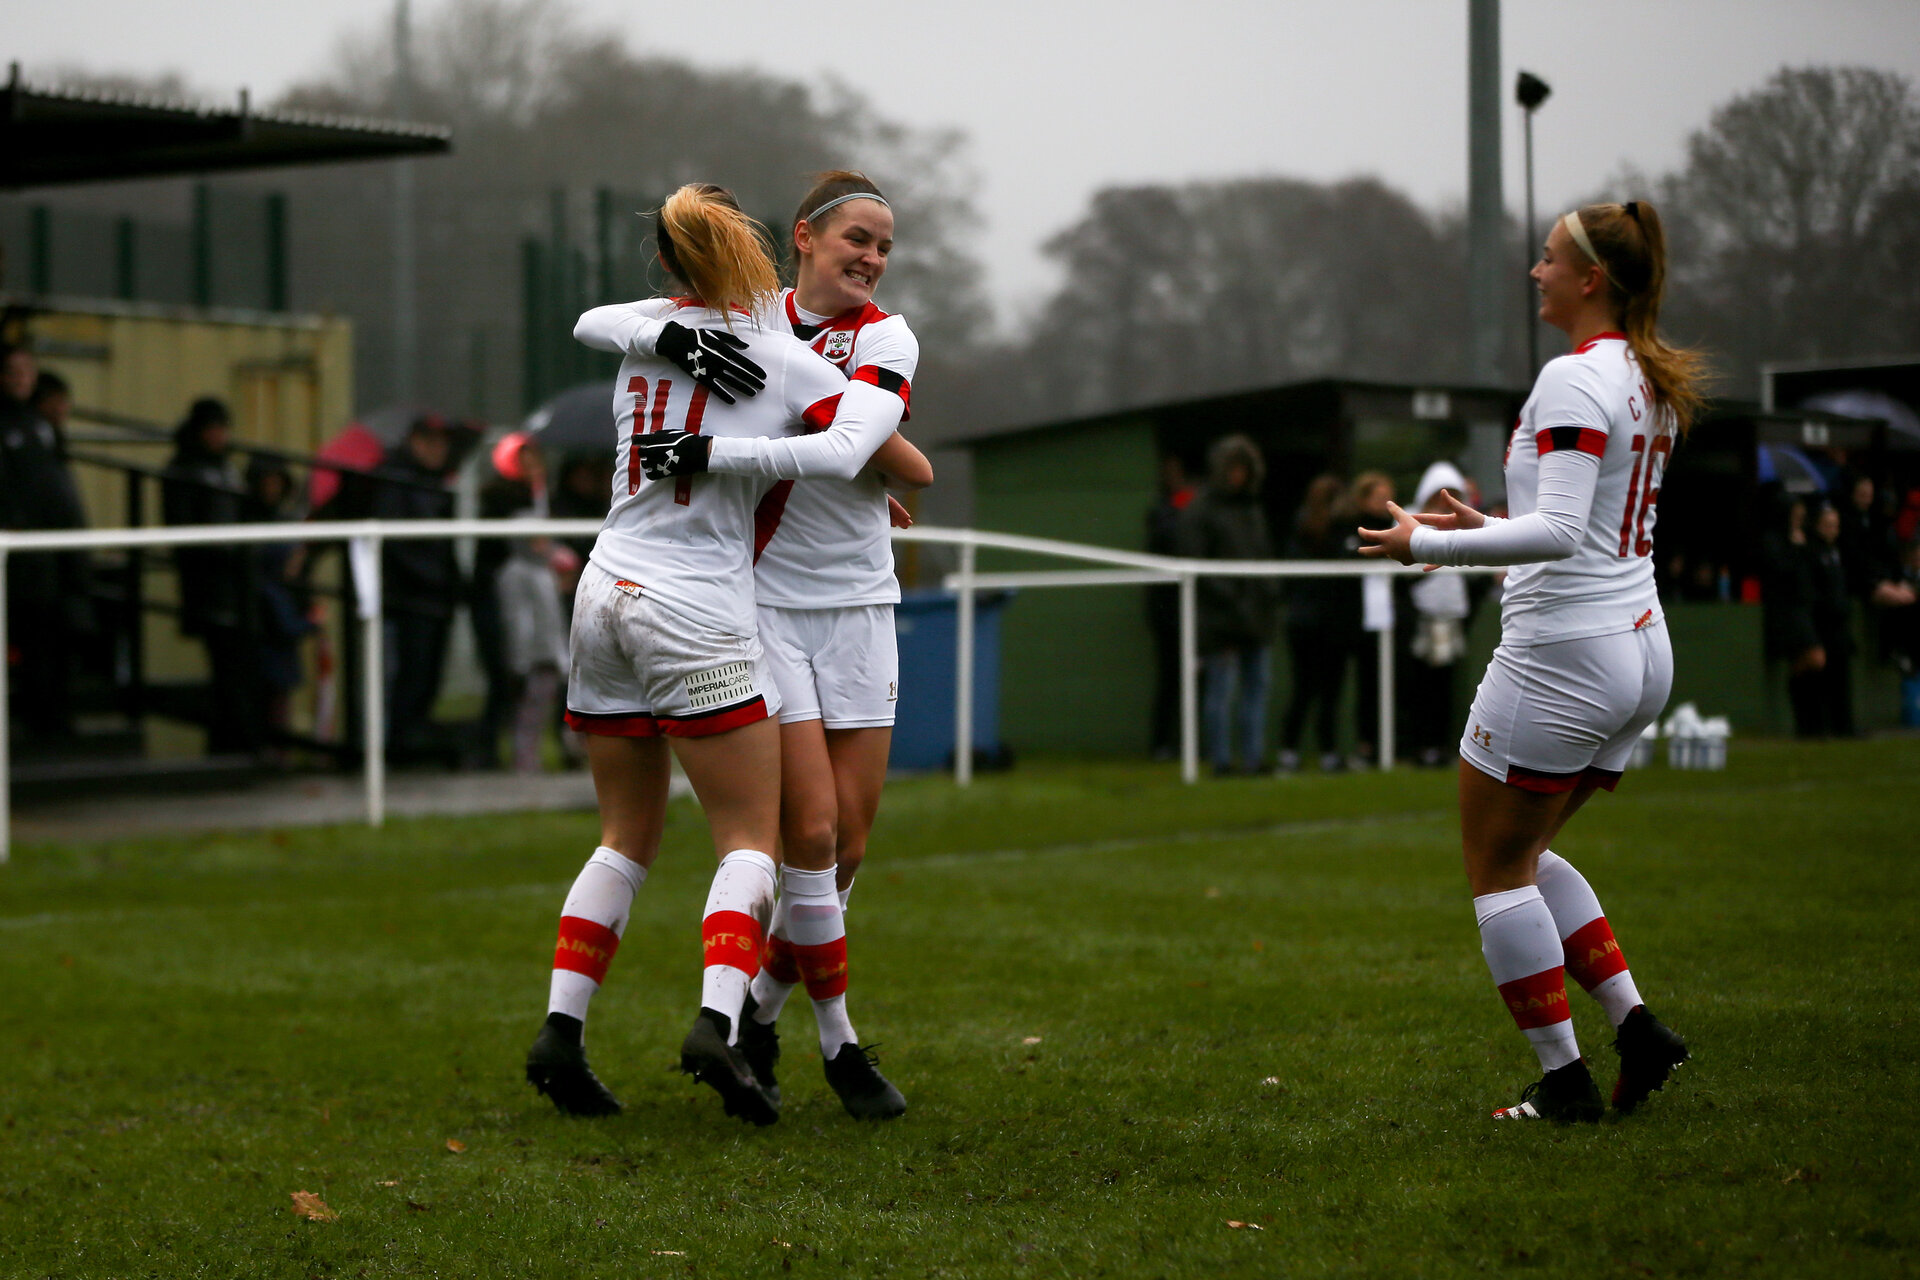 WIMBORNE, ENGLAND - DECEMBER 13:  during The Vitality Women's FA Cup, first-round proper match between AFC Bournemouth and Southampton FC Women's at Verwood FC on December 13, 2020 in, Wimborne, England. (Photo by Isabelle Field/Southampton FC via Getty Images)